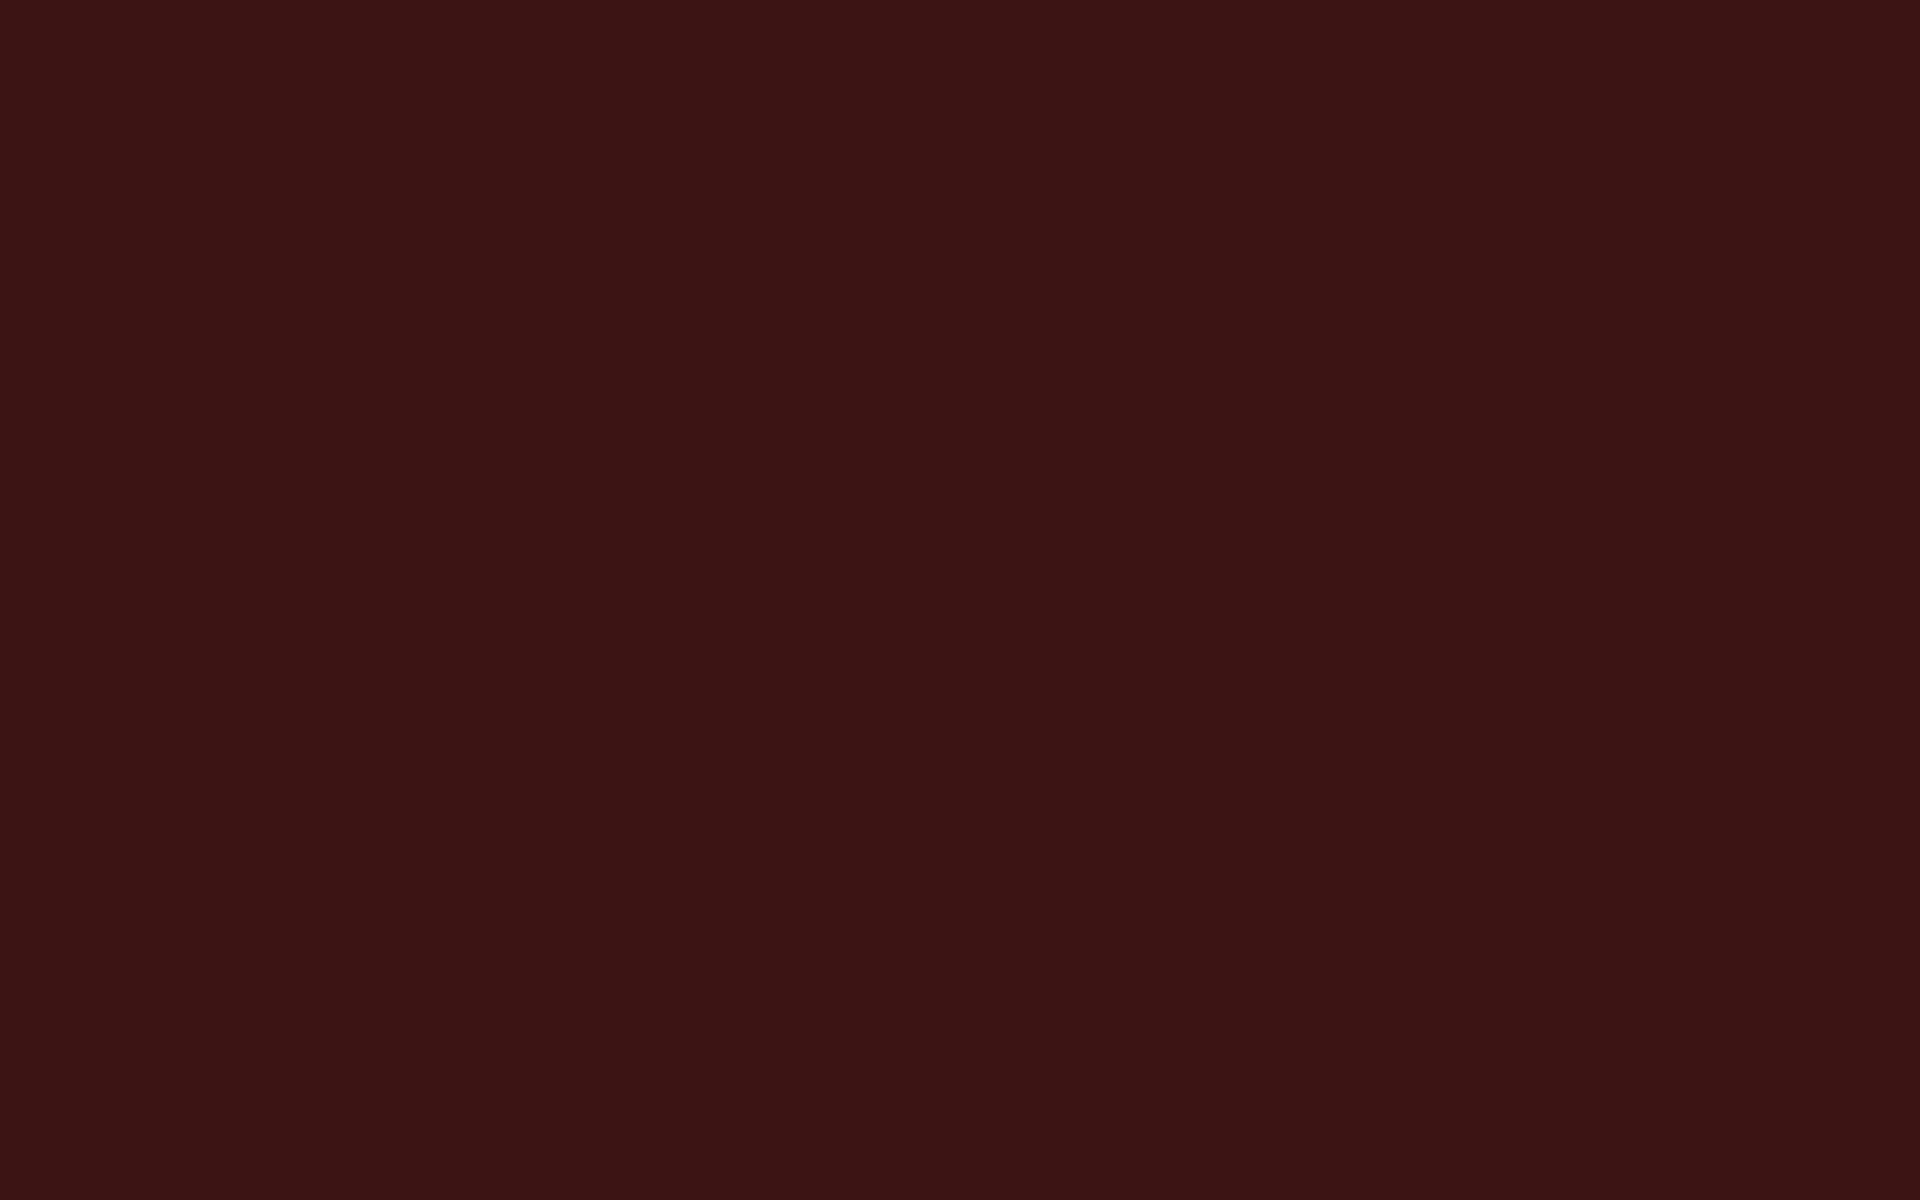 1920x1200 Dark Sienna Solid Color Background